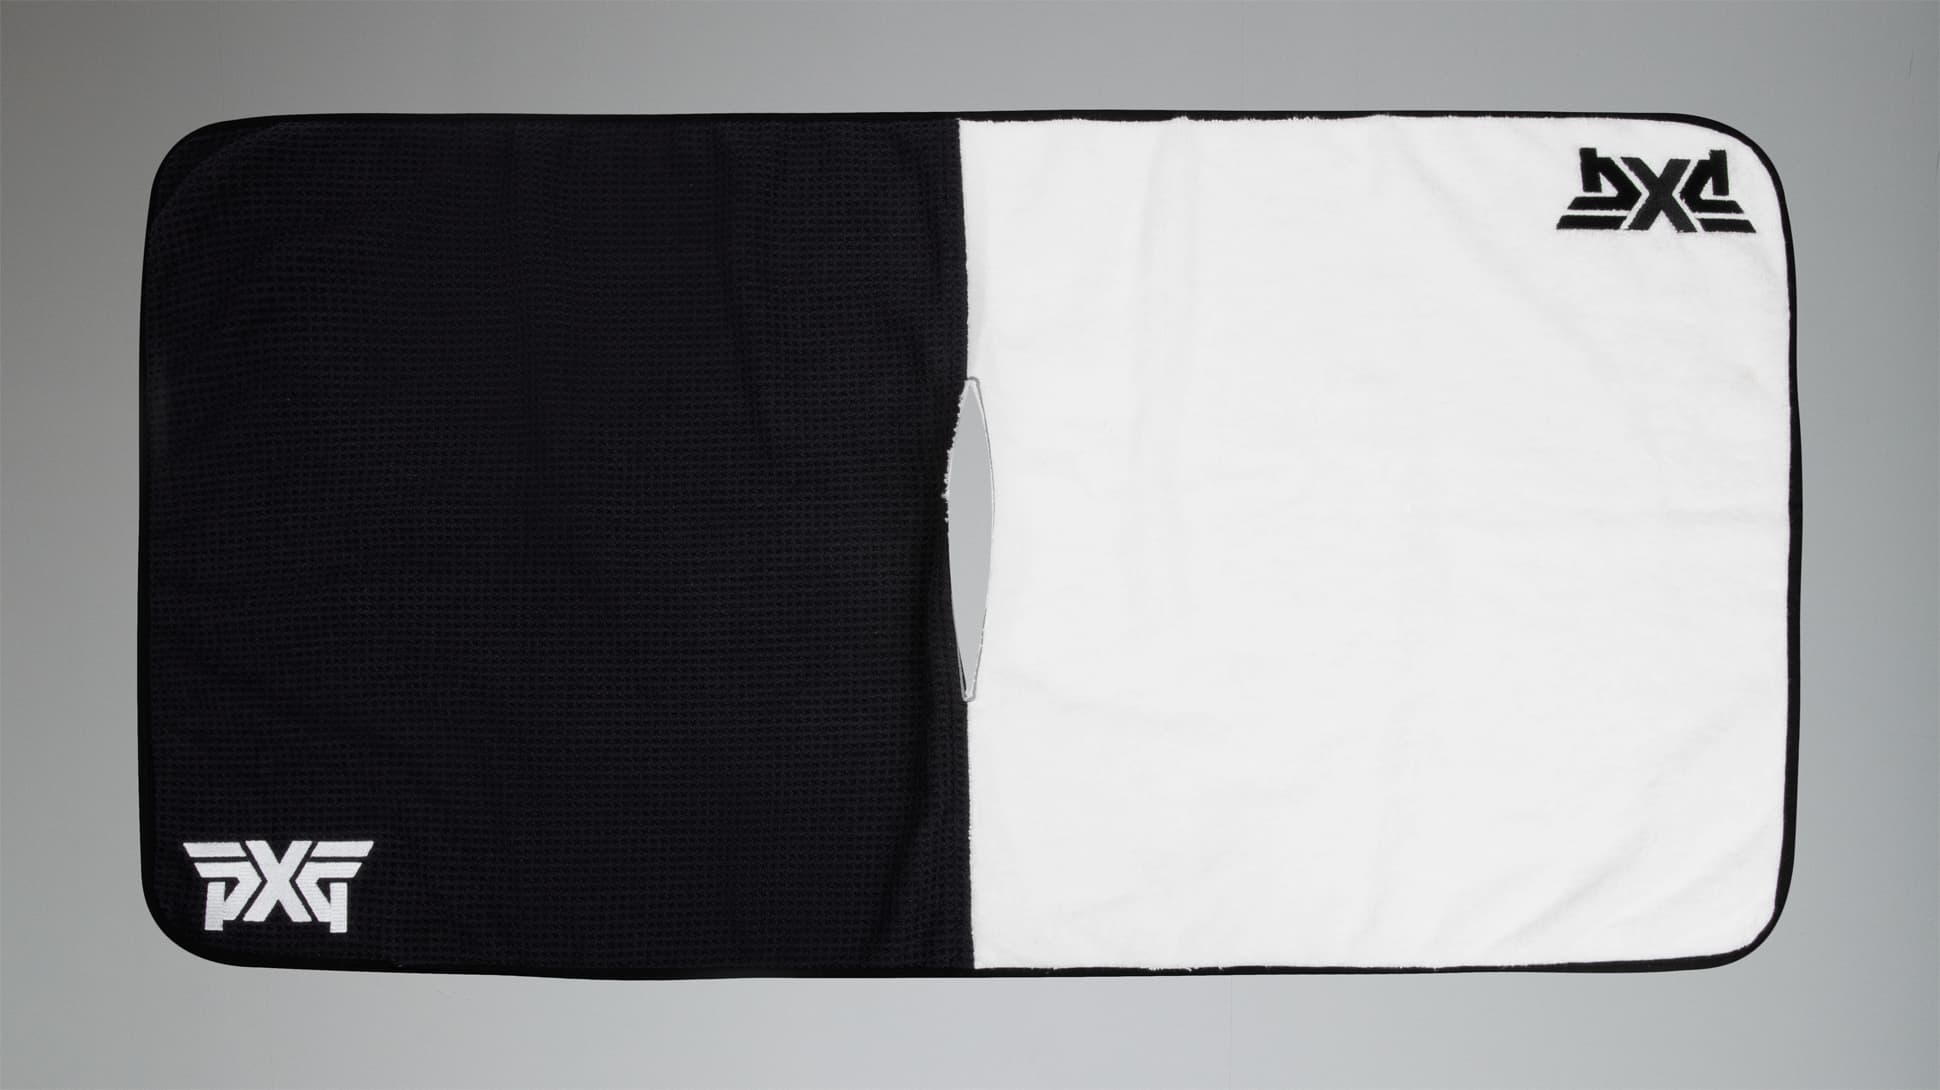 2-FACED PLAYERS TOWEL Image 2